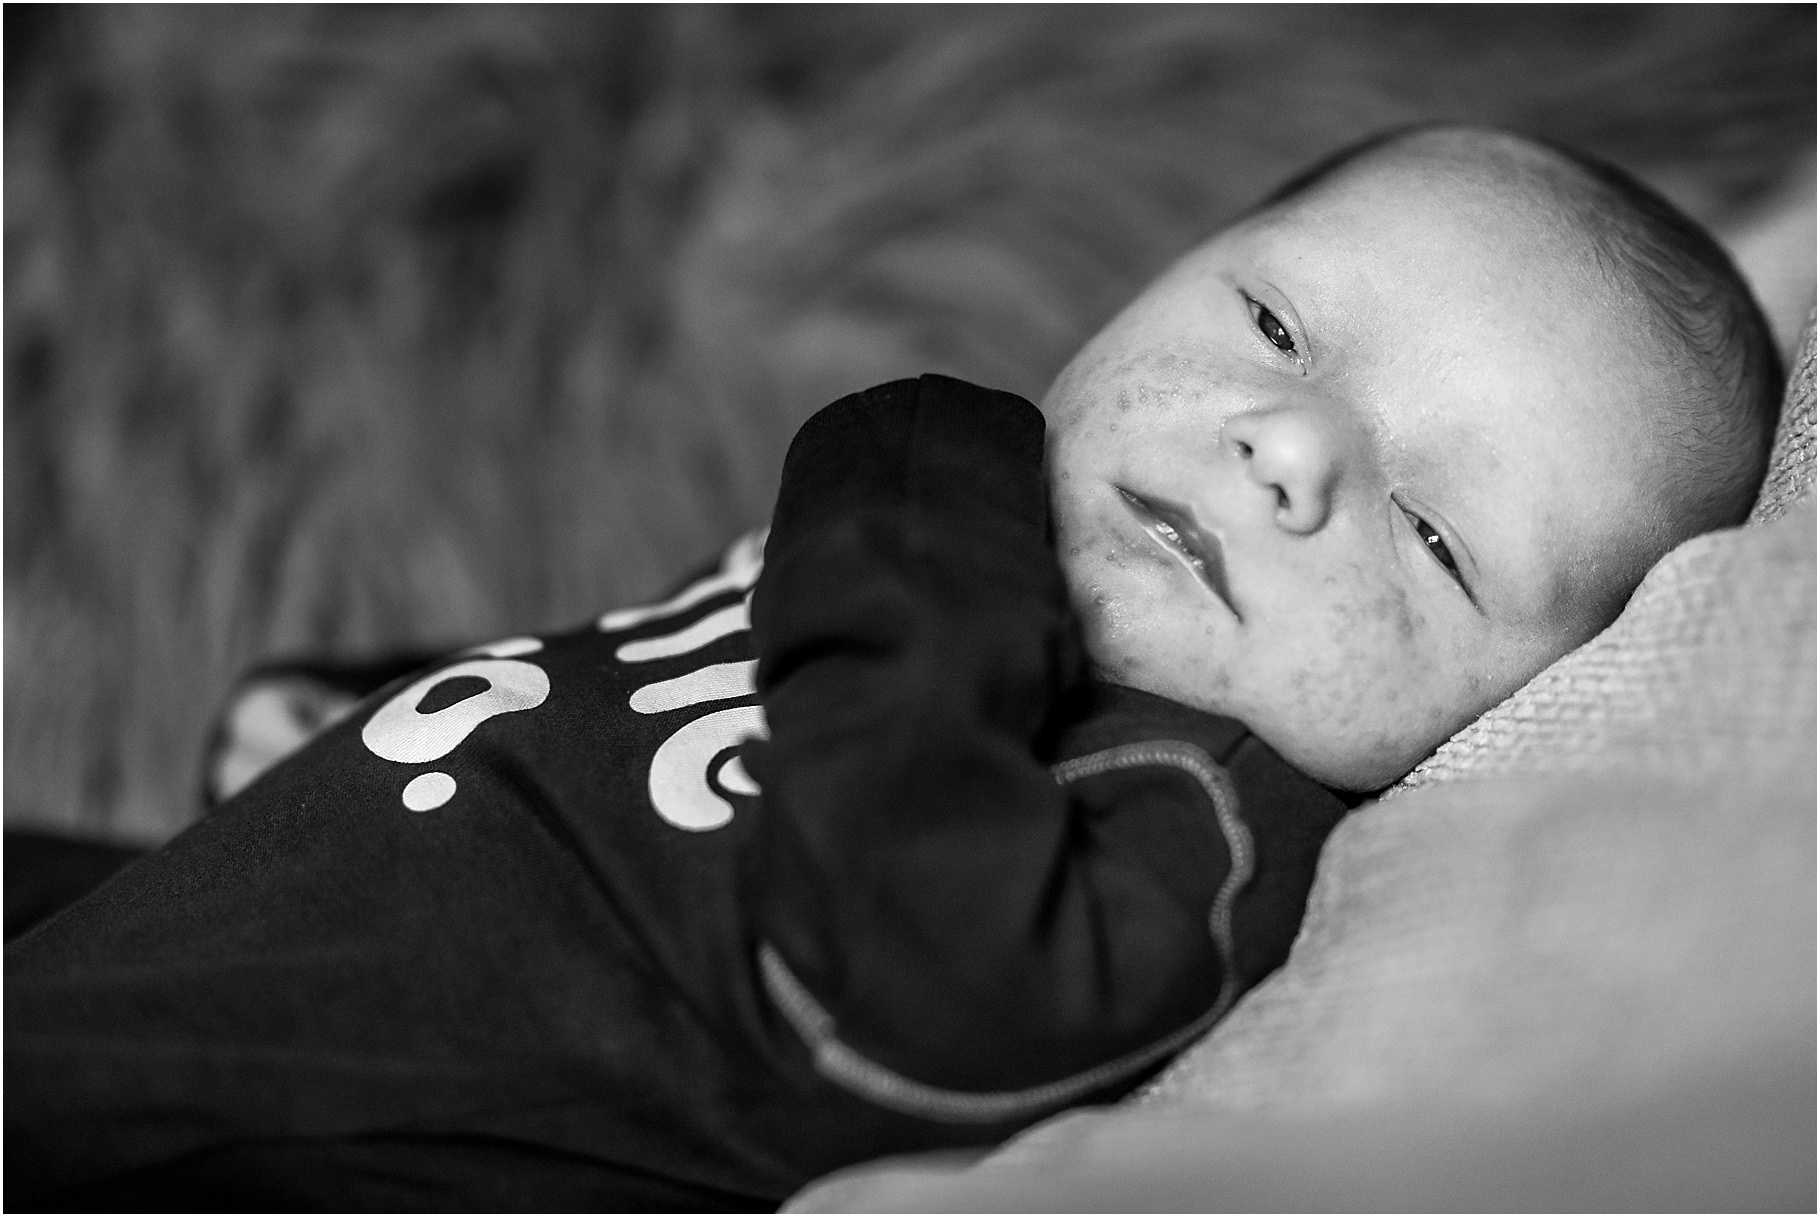 lancashire-family-portraits-documentary-newborn-19.jpg